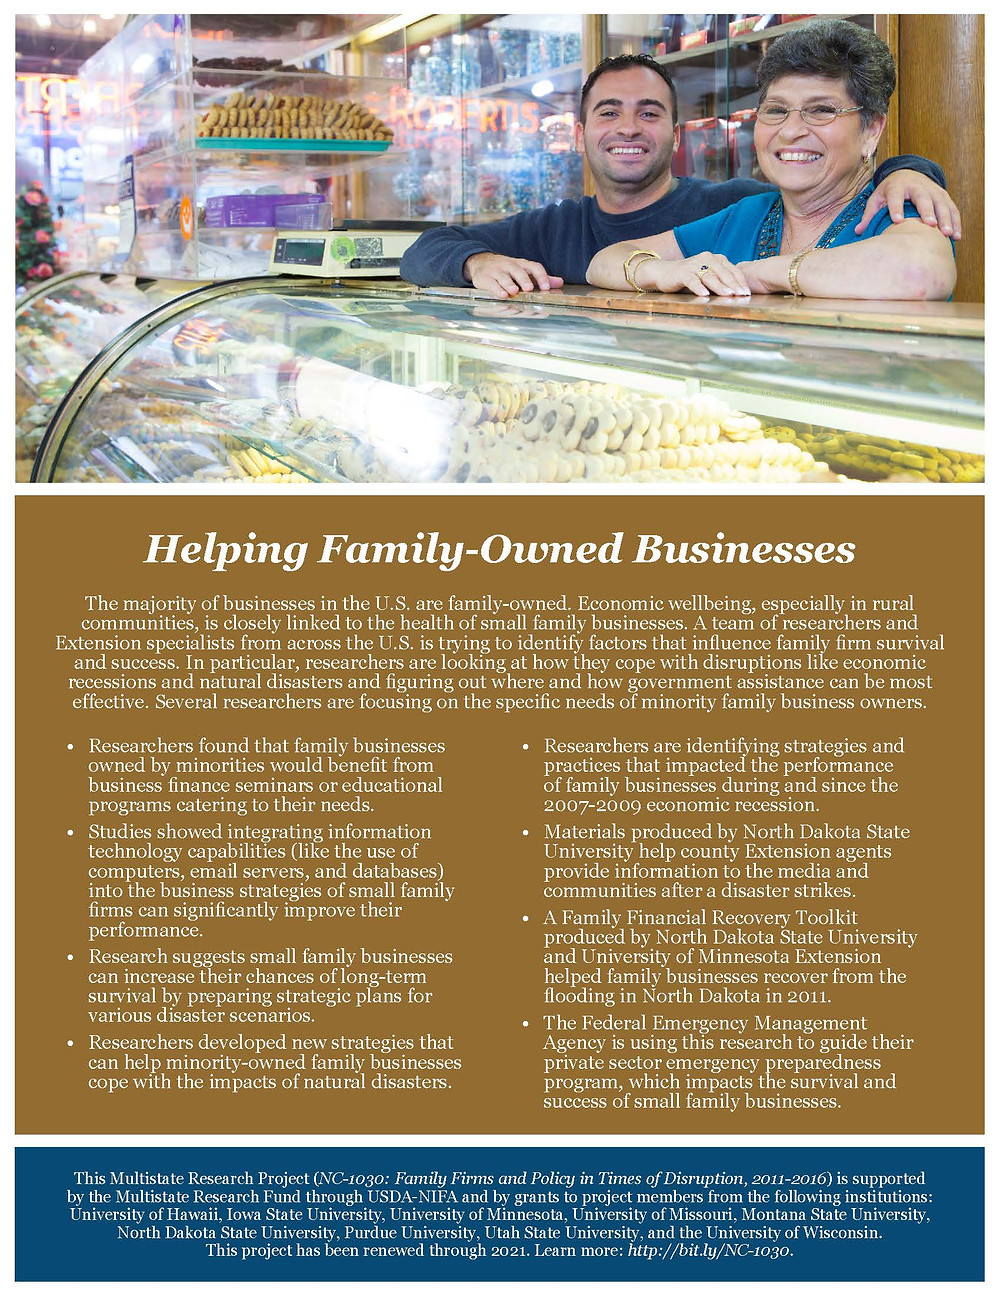 Helping Family-Owned Businesses. NC-1030 Impact Statement. Click to view or download PDF.